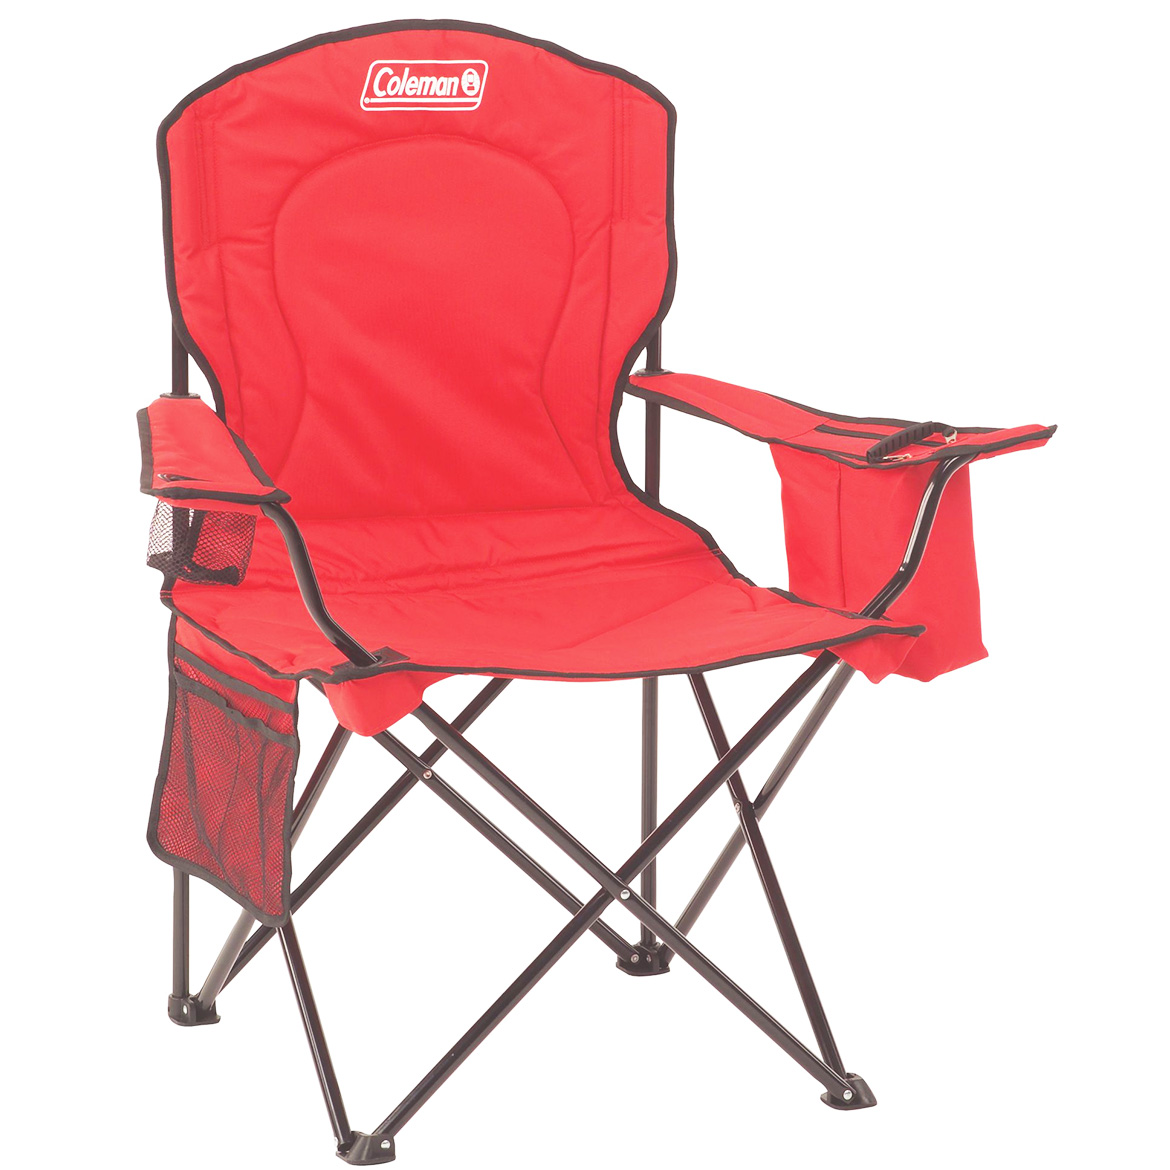 ae300e12146e Coleman 2000032009 Red Portable Comfort Cup Holder Quad Chair w/ Cooler